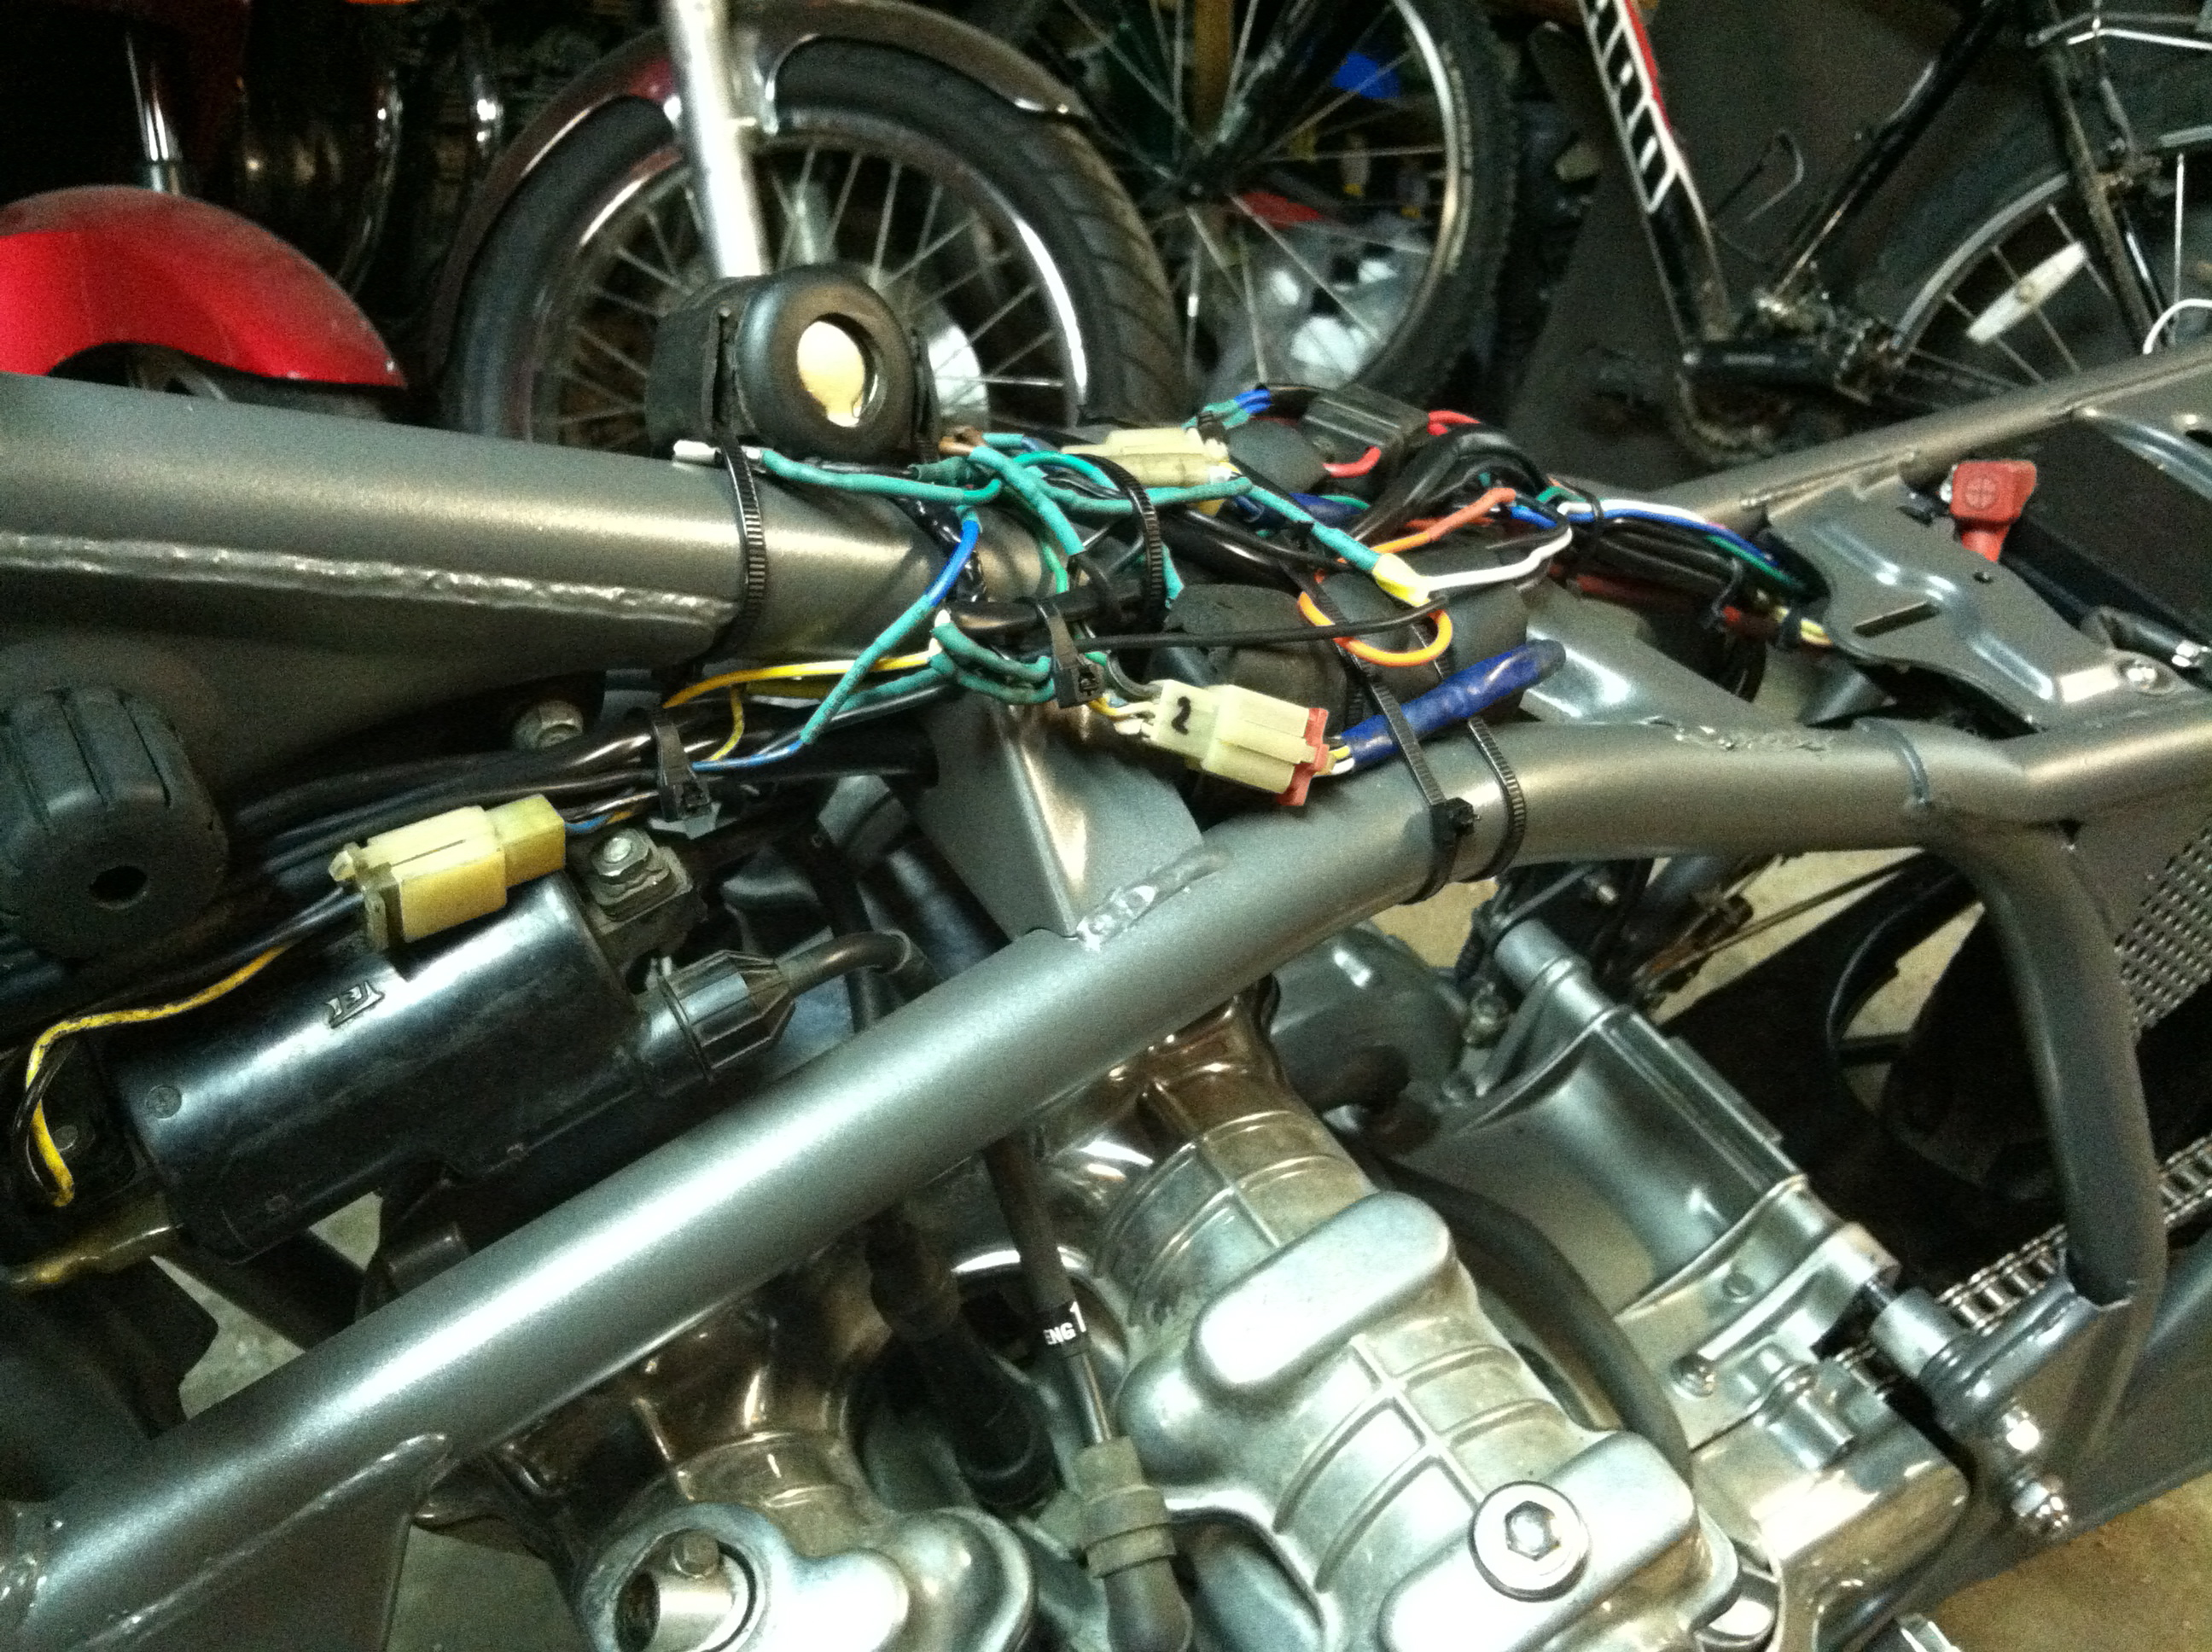 Wiring One Up Moto Garage Custom Built Harness The Master Cylinder I Installed Has A Brake Light Switch In So Wired That Into